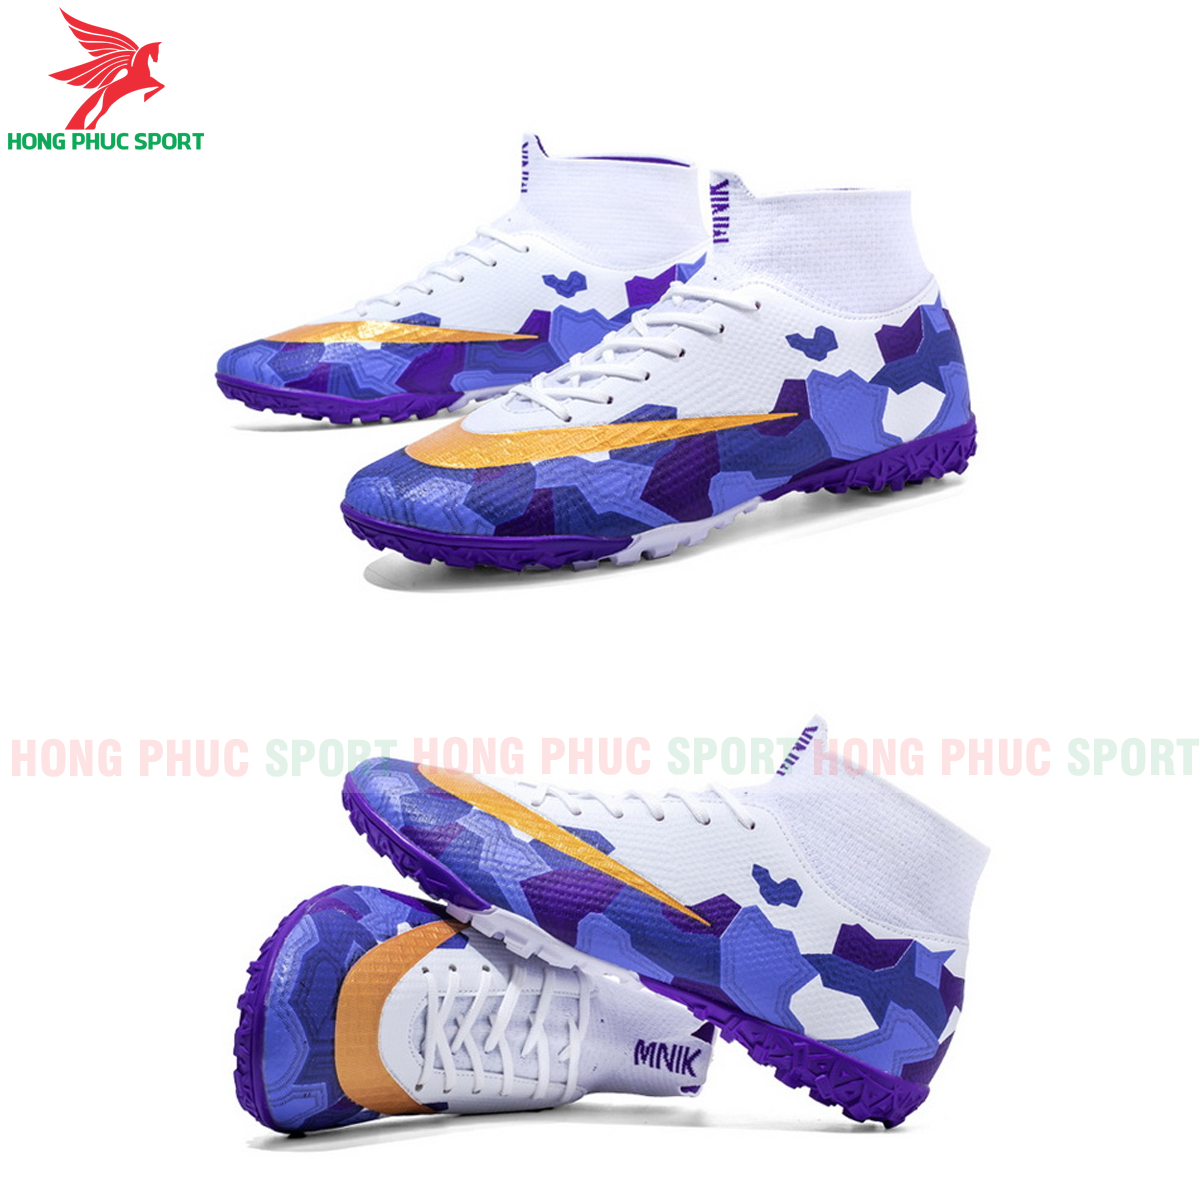 https://cdn.hongphucsport.com/unsafe/s4.shopbay.vn/files/285/giay-co-cao-superfly-7-elite-mbappe-dinh-thap-mau-xanh-duong-6-5f9398b34519a.png